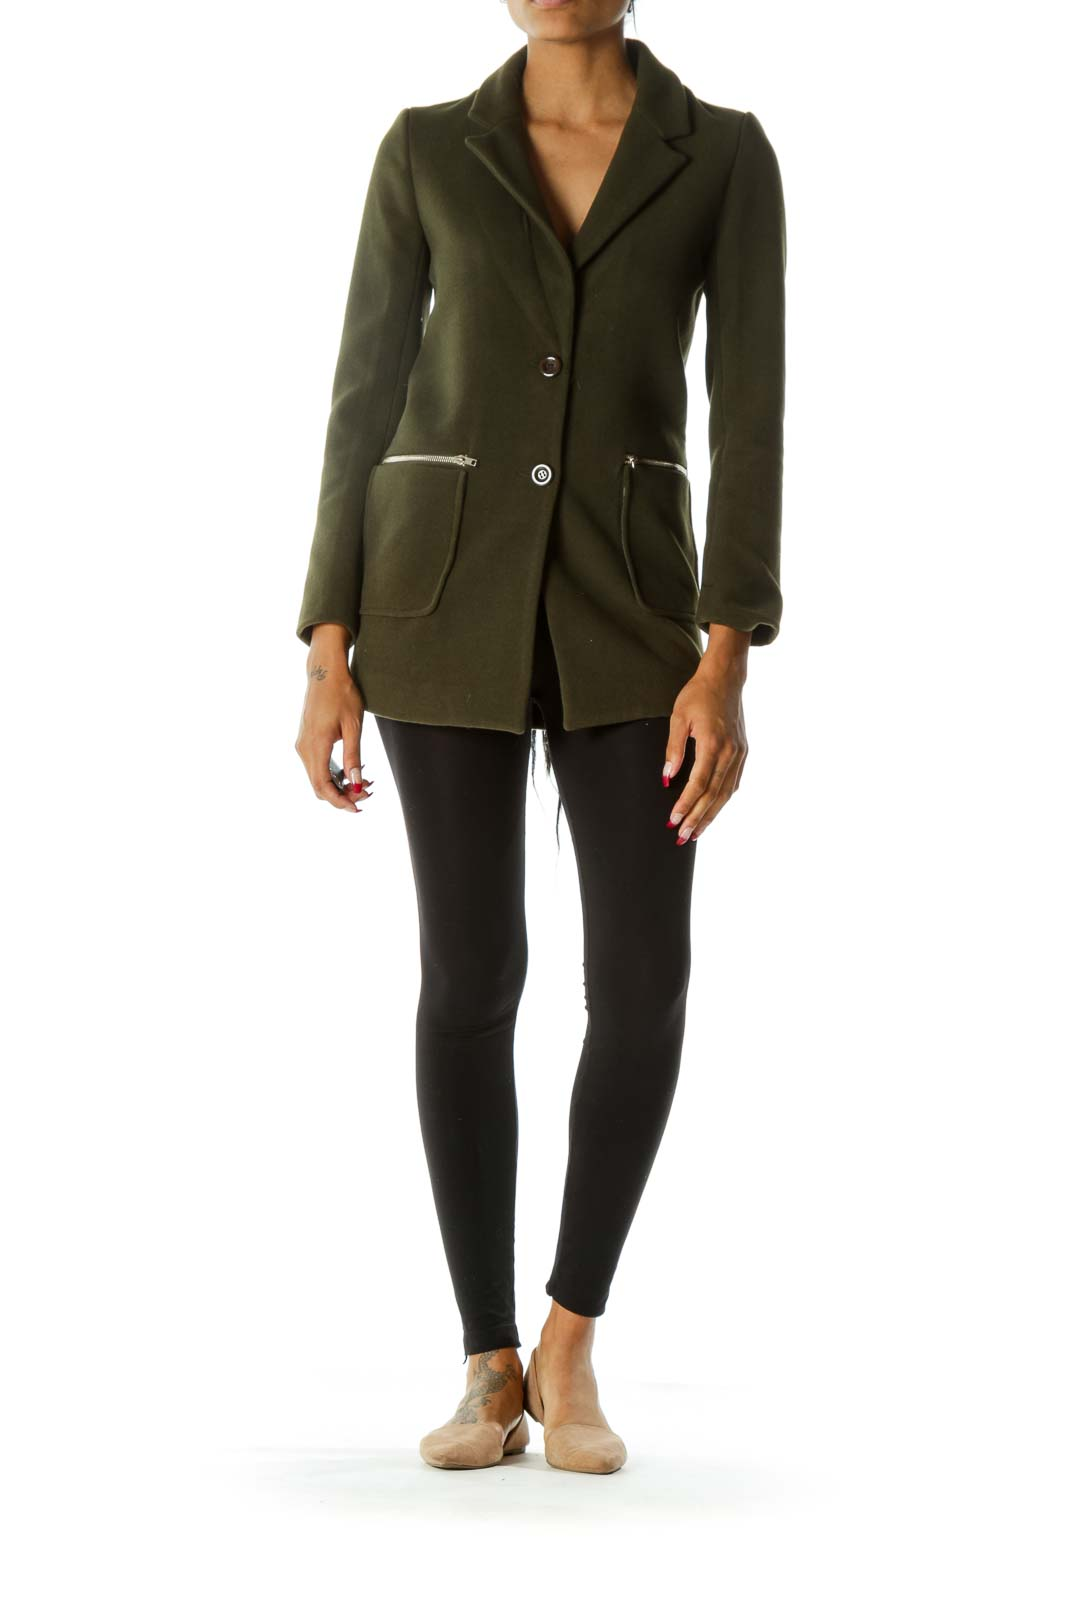 Green V-Neck Zippers Pocketed Buttoned Long Sleeve Coat